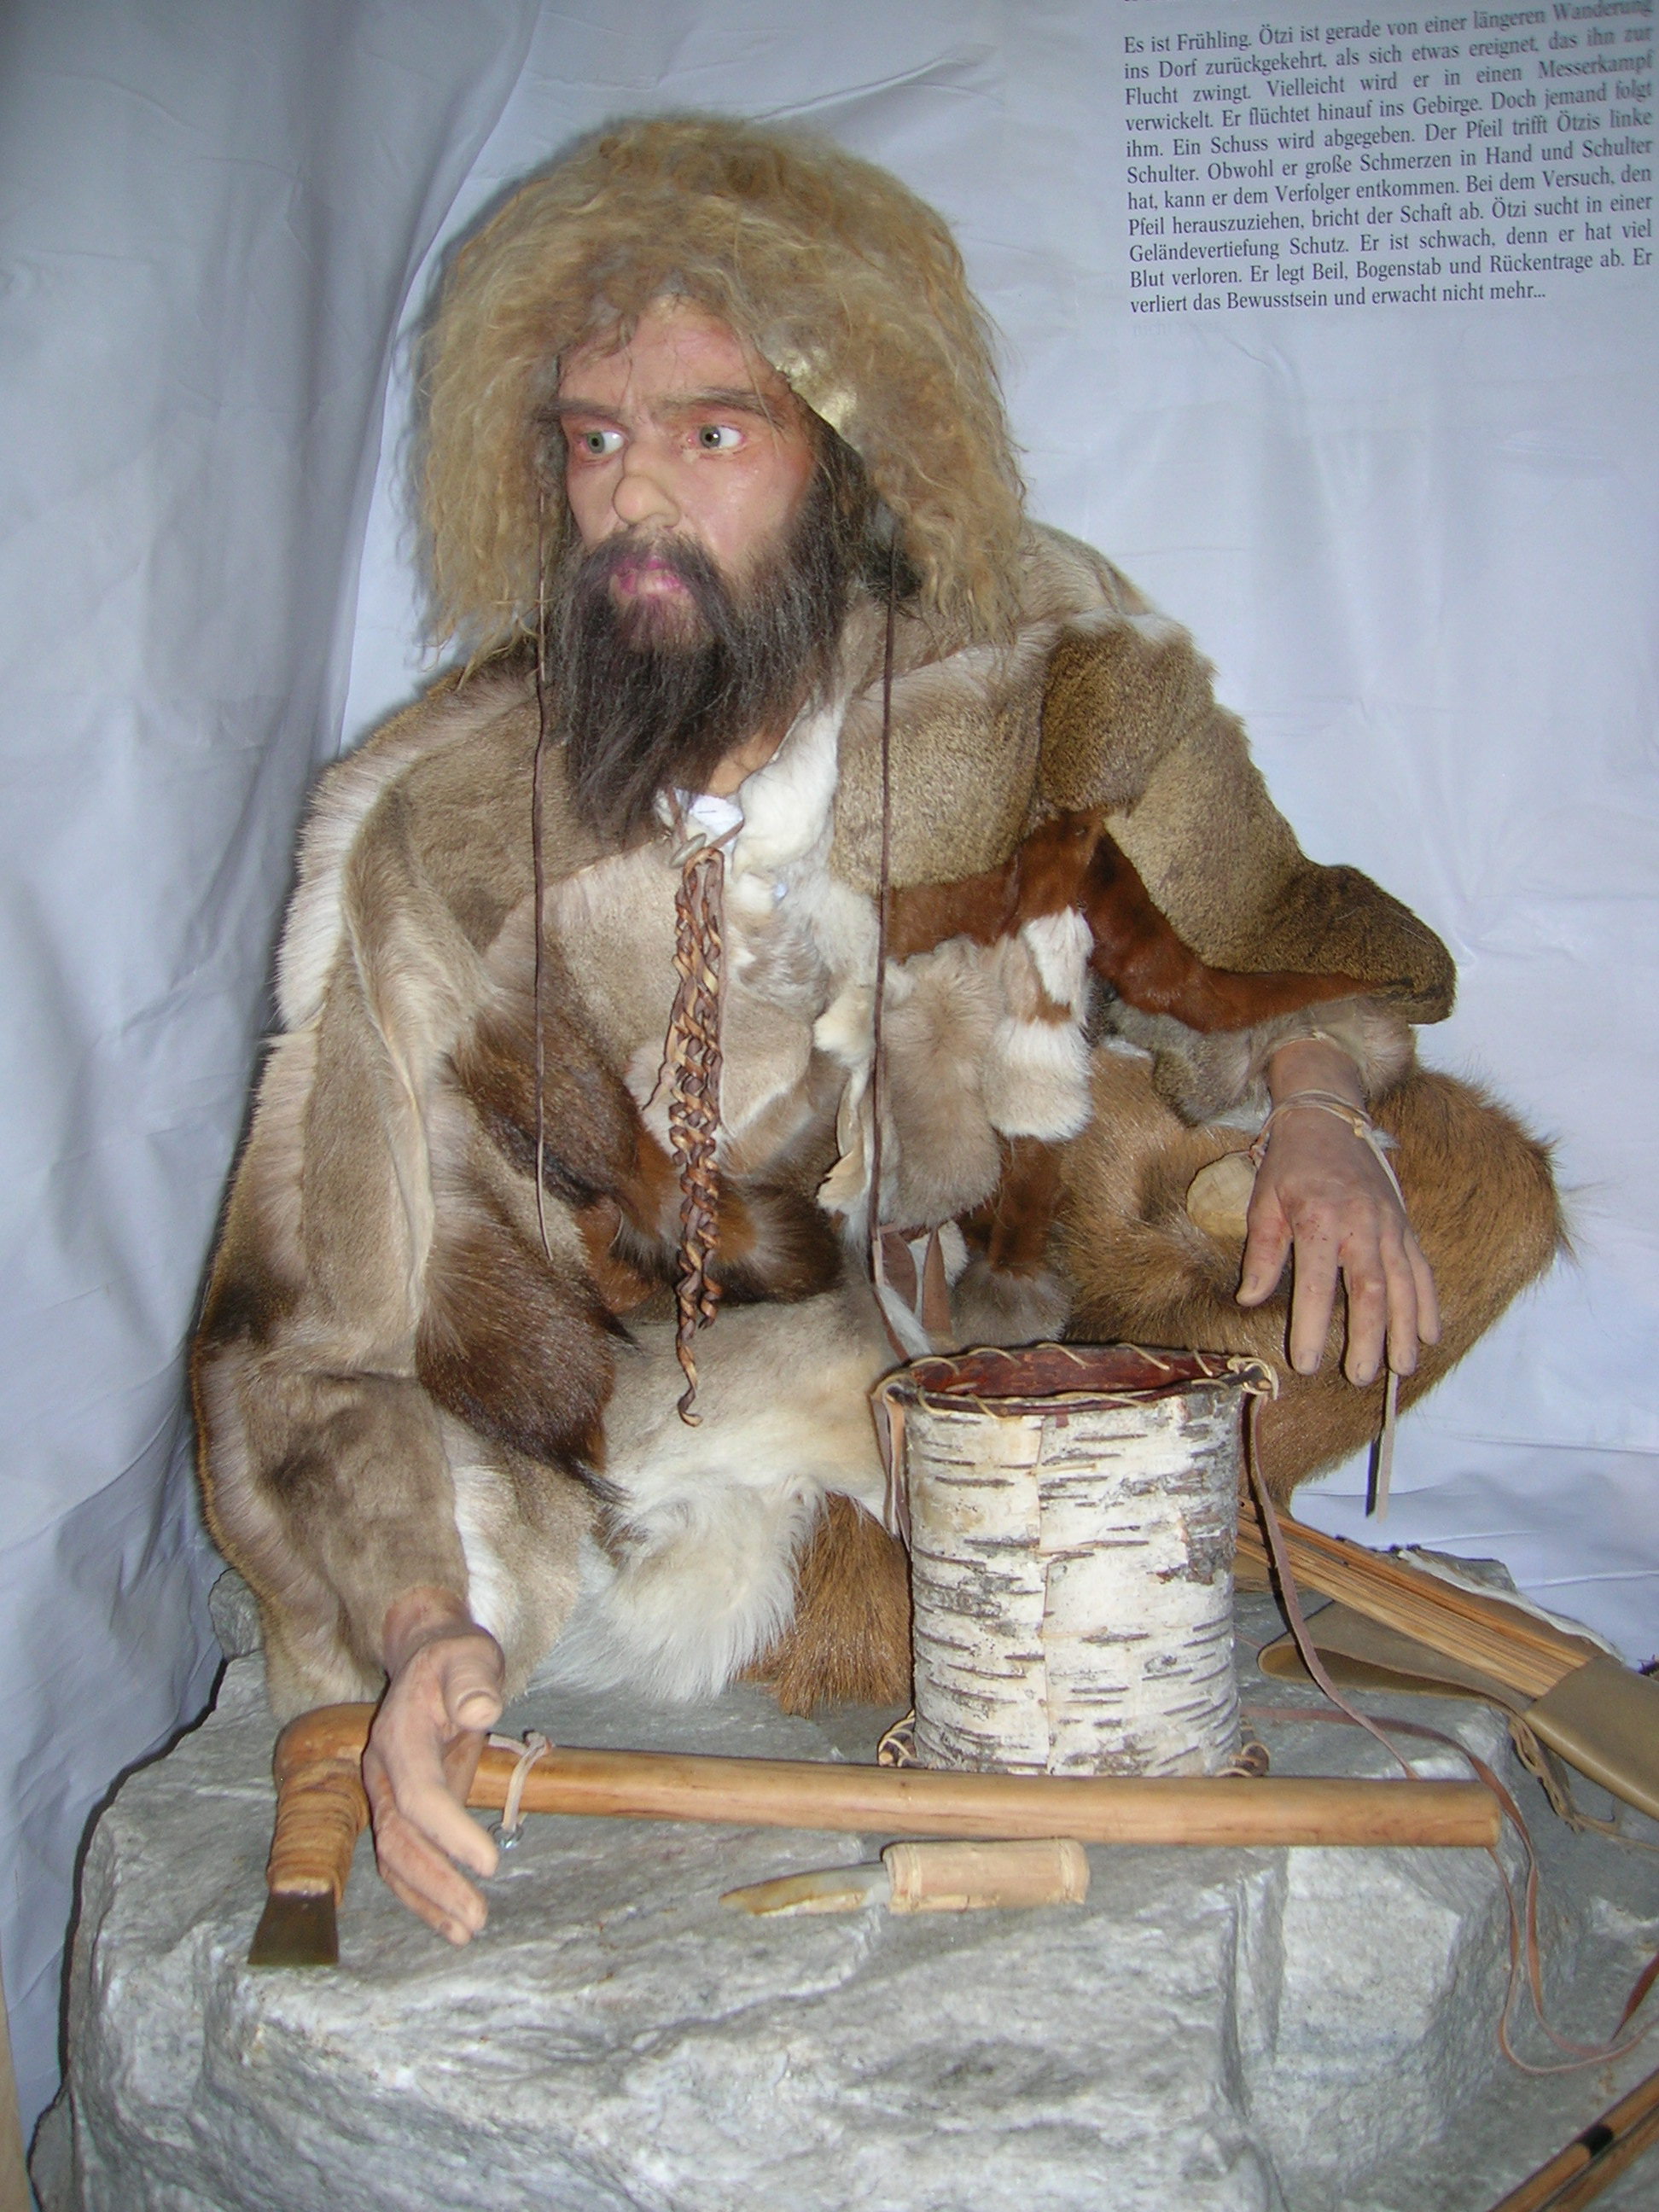 Ötzi - the ice man.